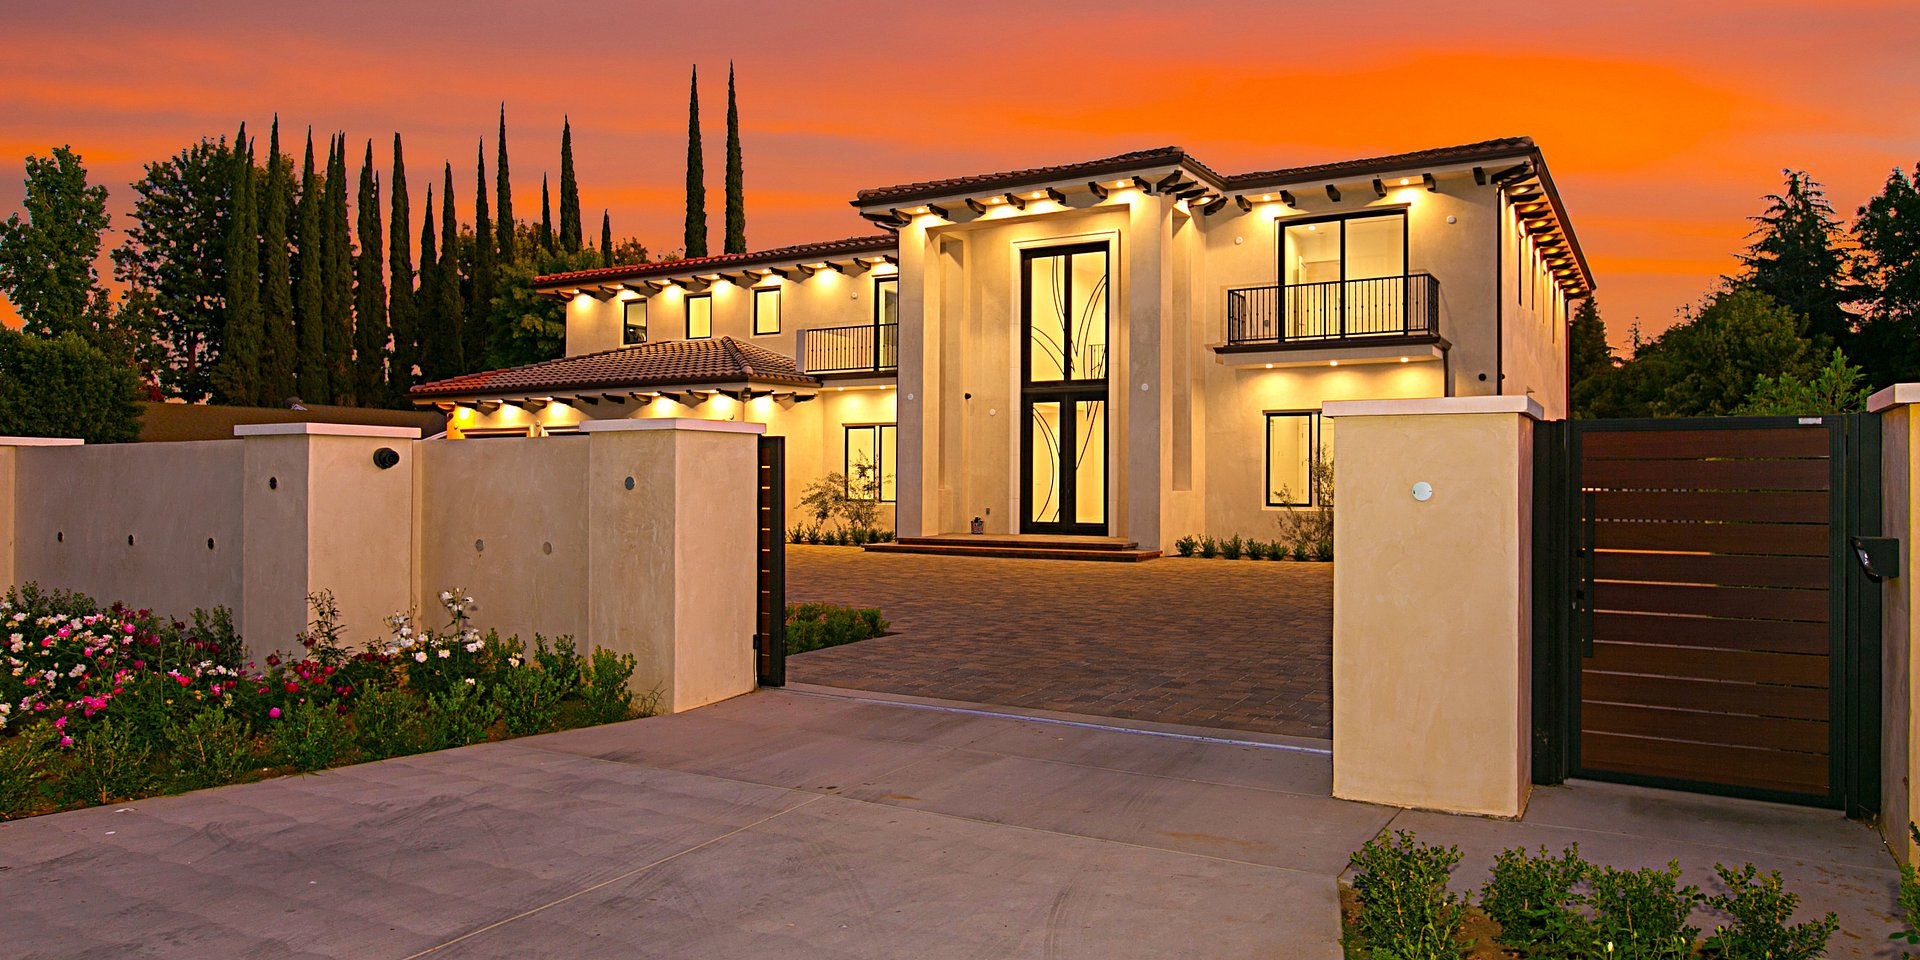 Coldwell Banker Residential Brokerage Lists Woodland Hills Property for $4.25 Million